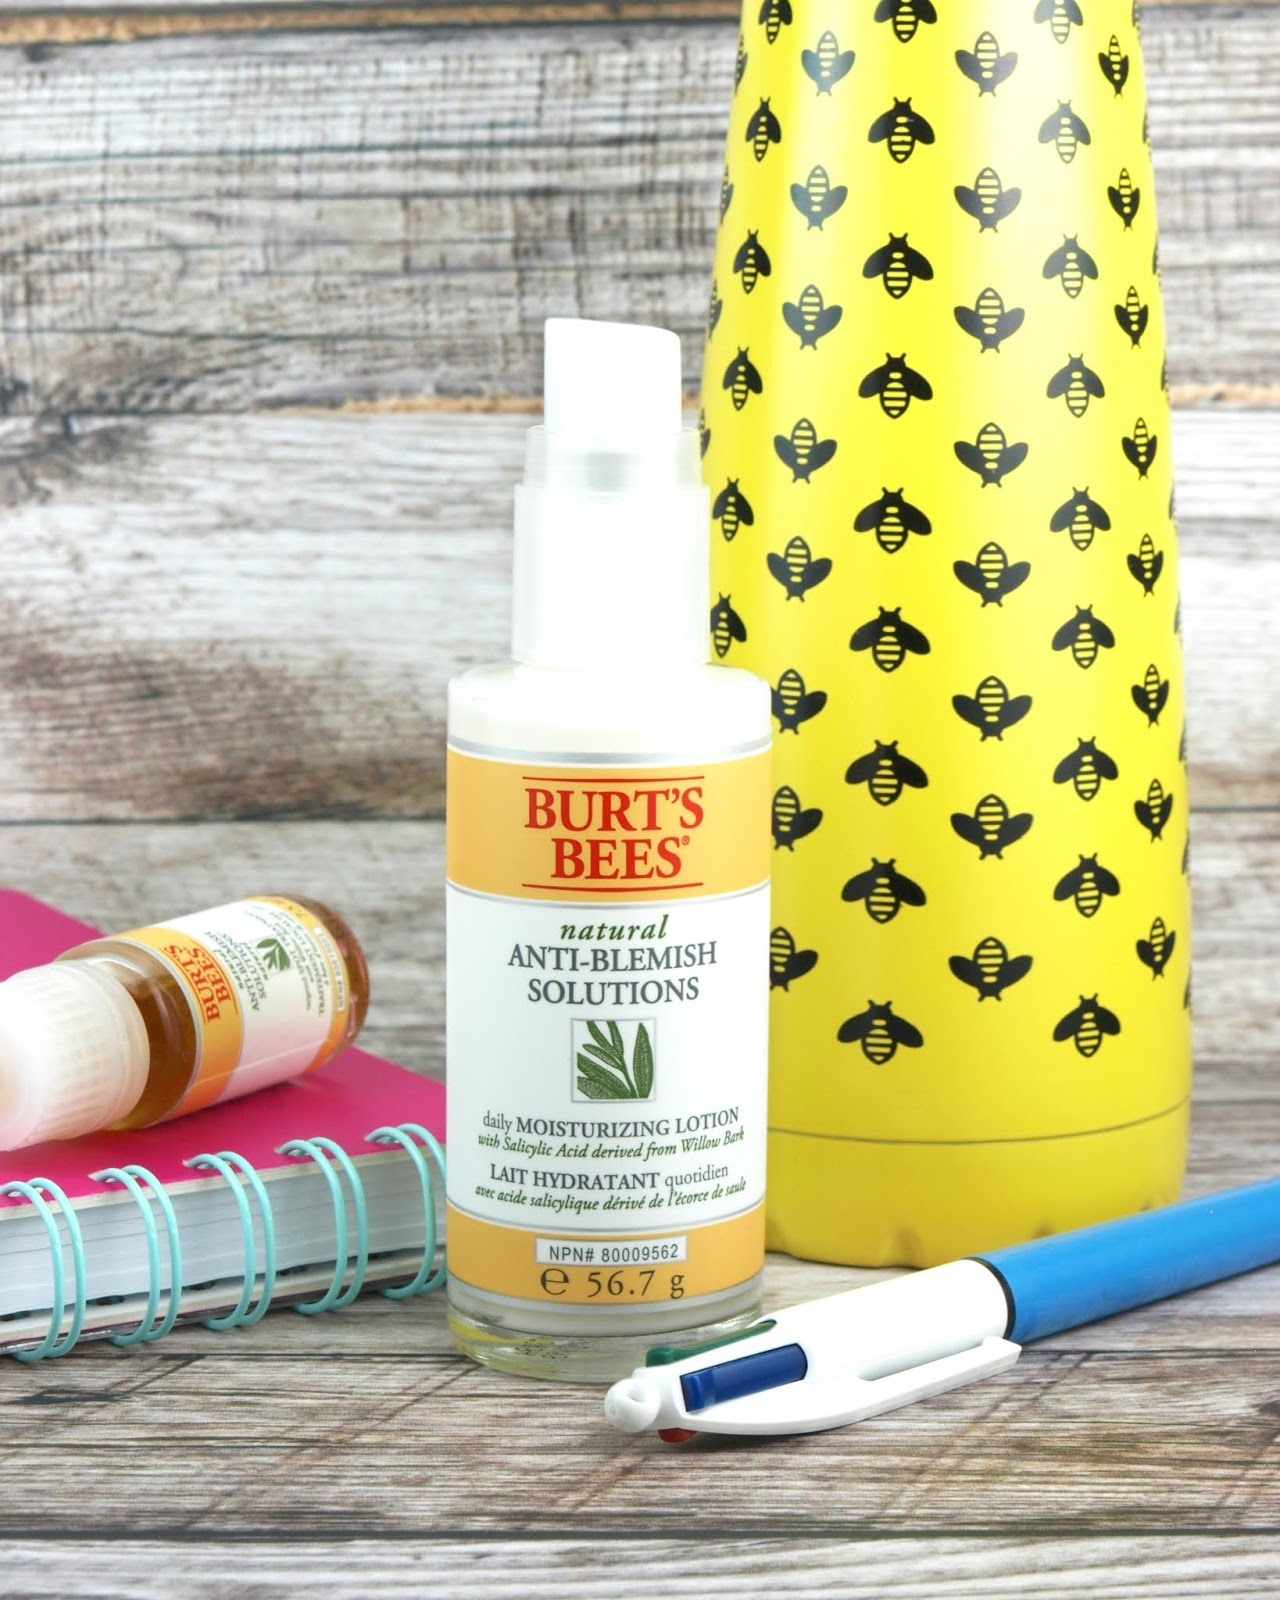 Burt's Bees | Natural Anti-Blemish Solutions Daily Moisturizing Lotion: Review